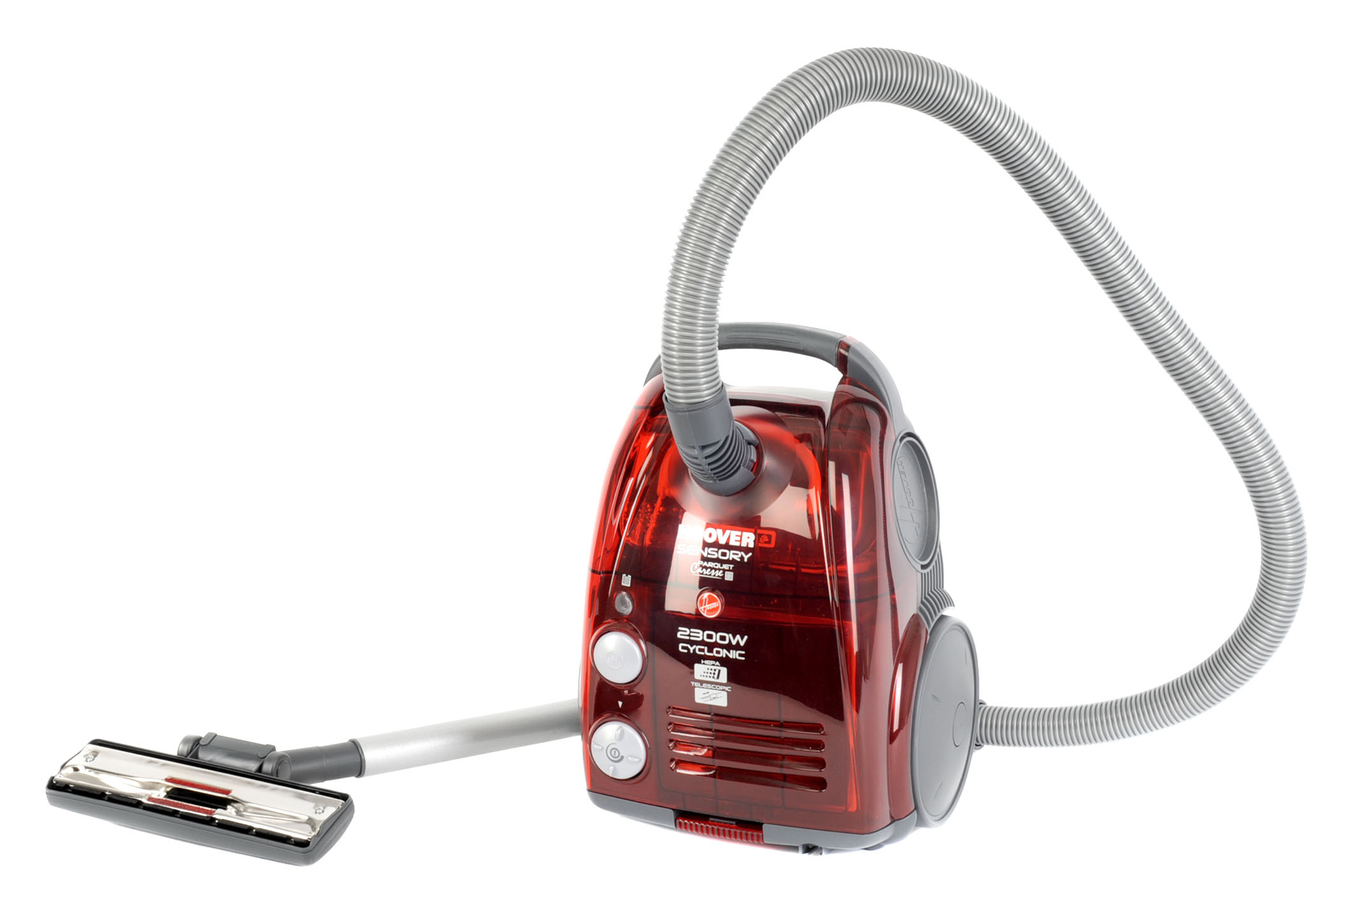 Aspirateur sans sac hoover tc 5235 3091996 darty - Aspirateur hoover sans sac ...